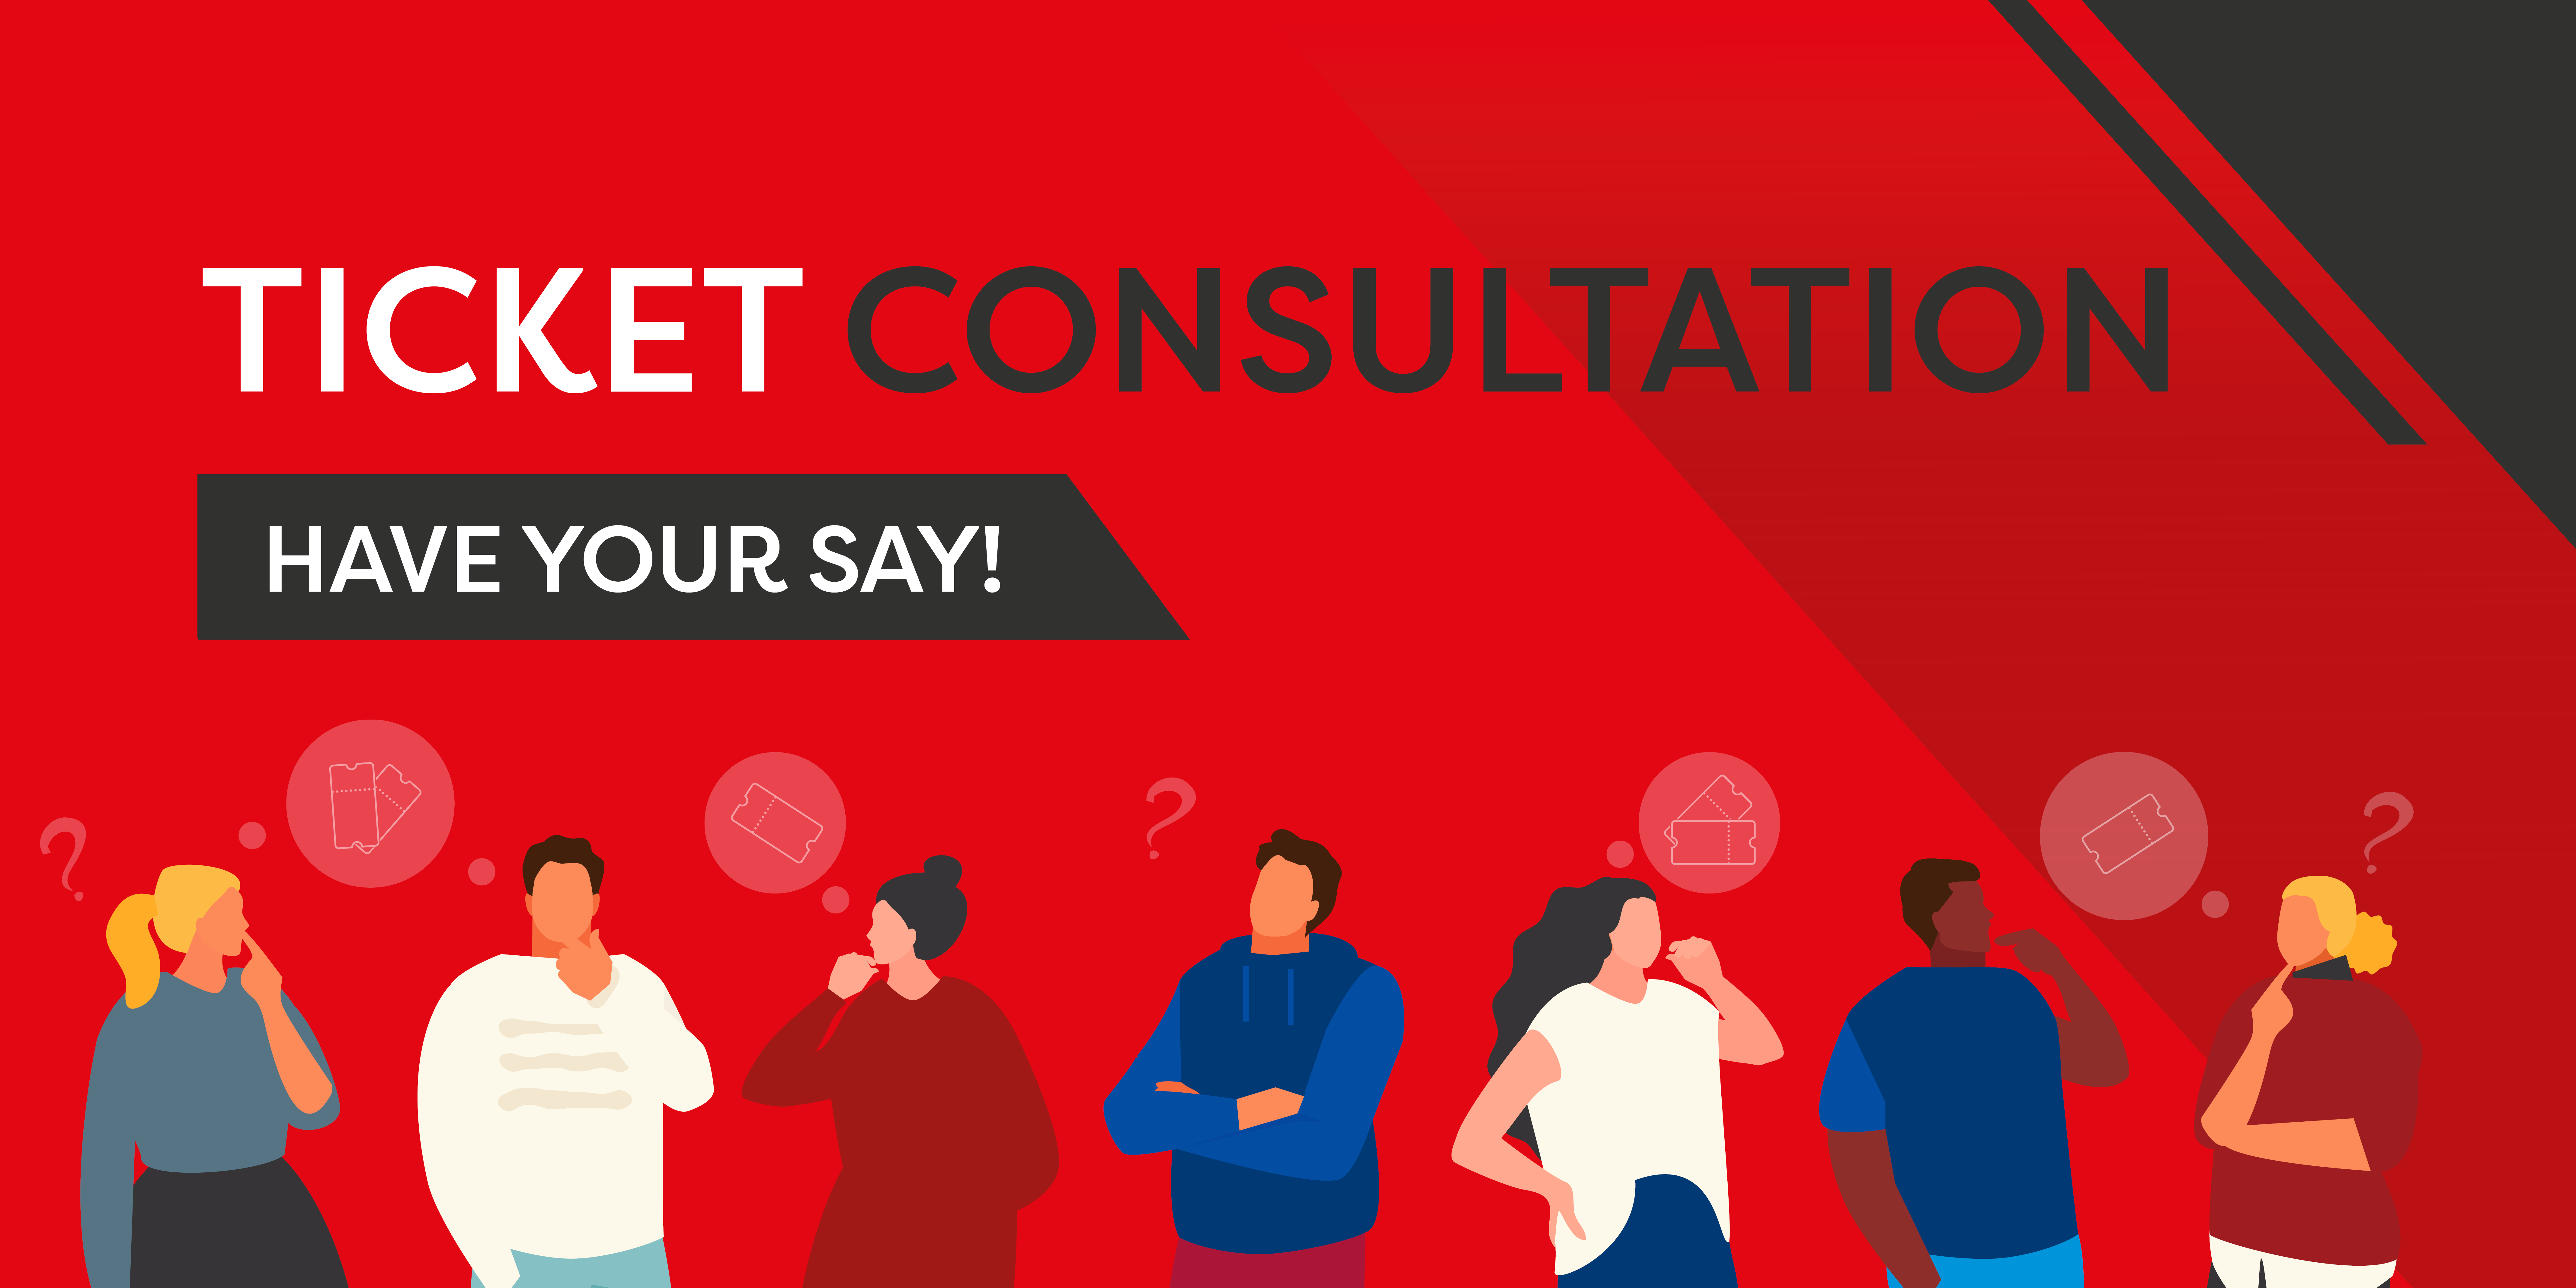 Image reading 'Ticket consultation - have your say'